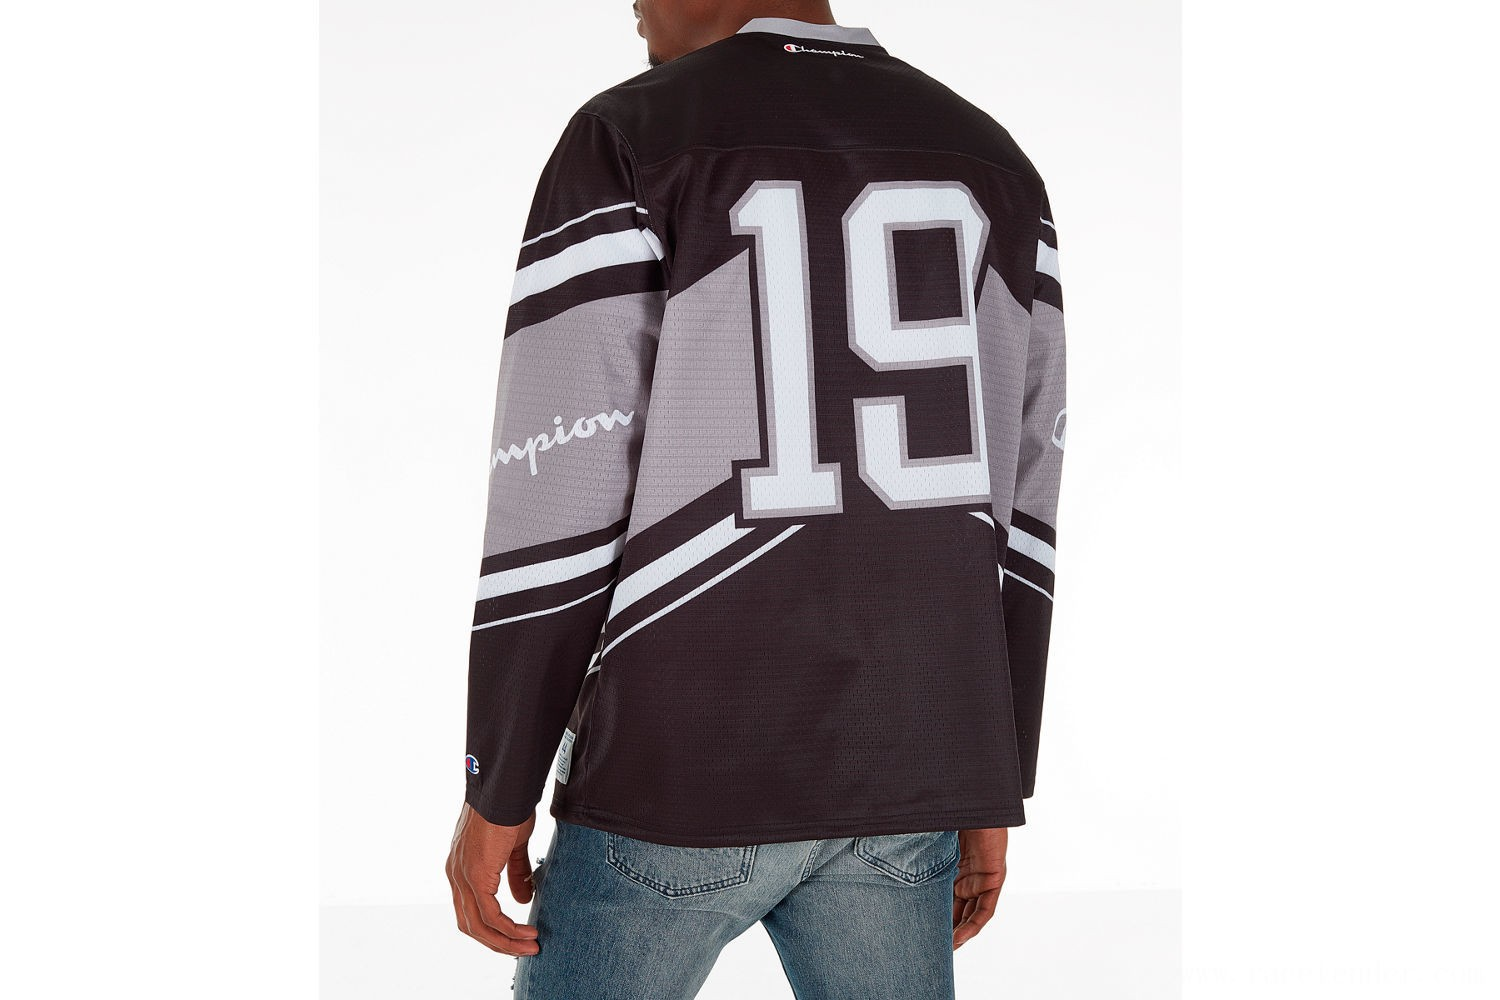 Champion Men's Hockey Jersey - Black/Grey/White